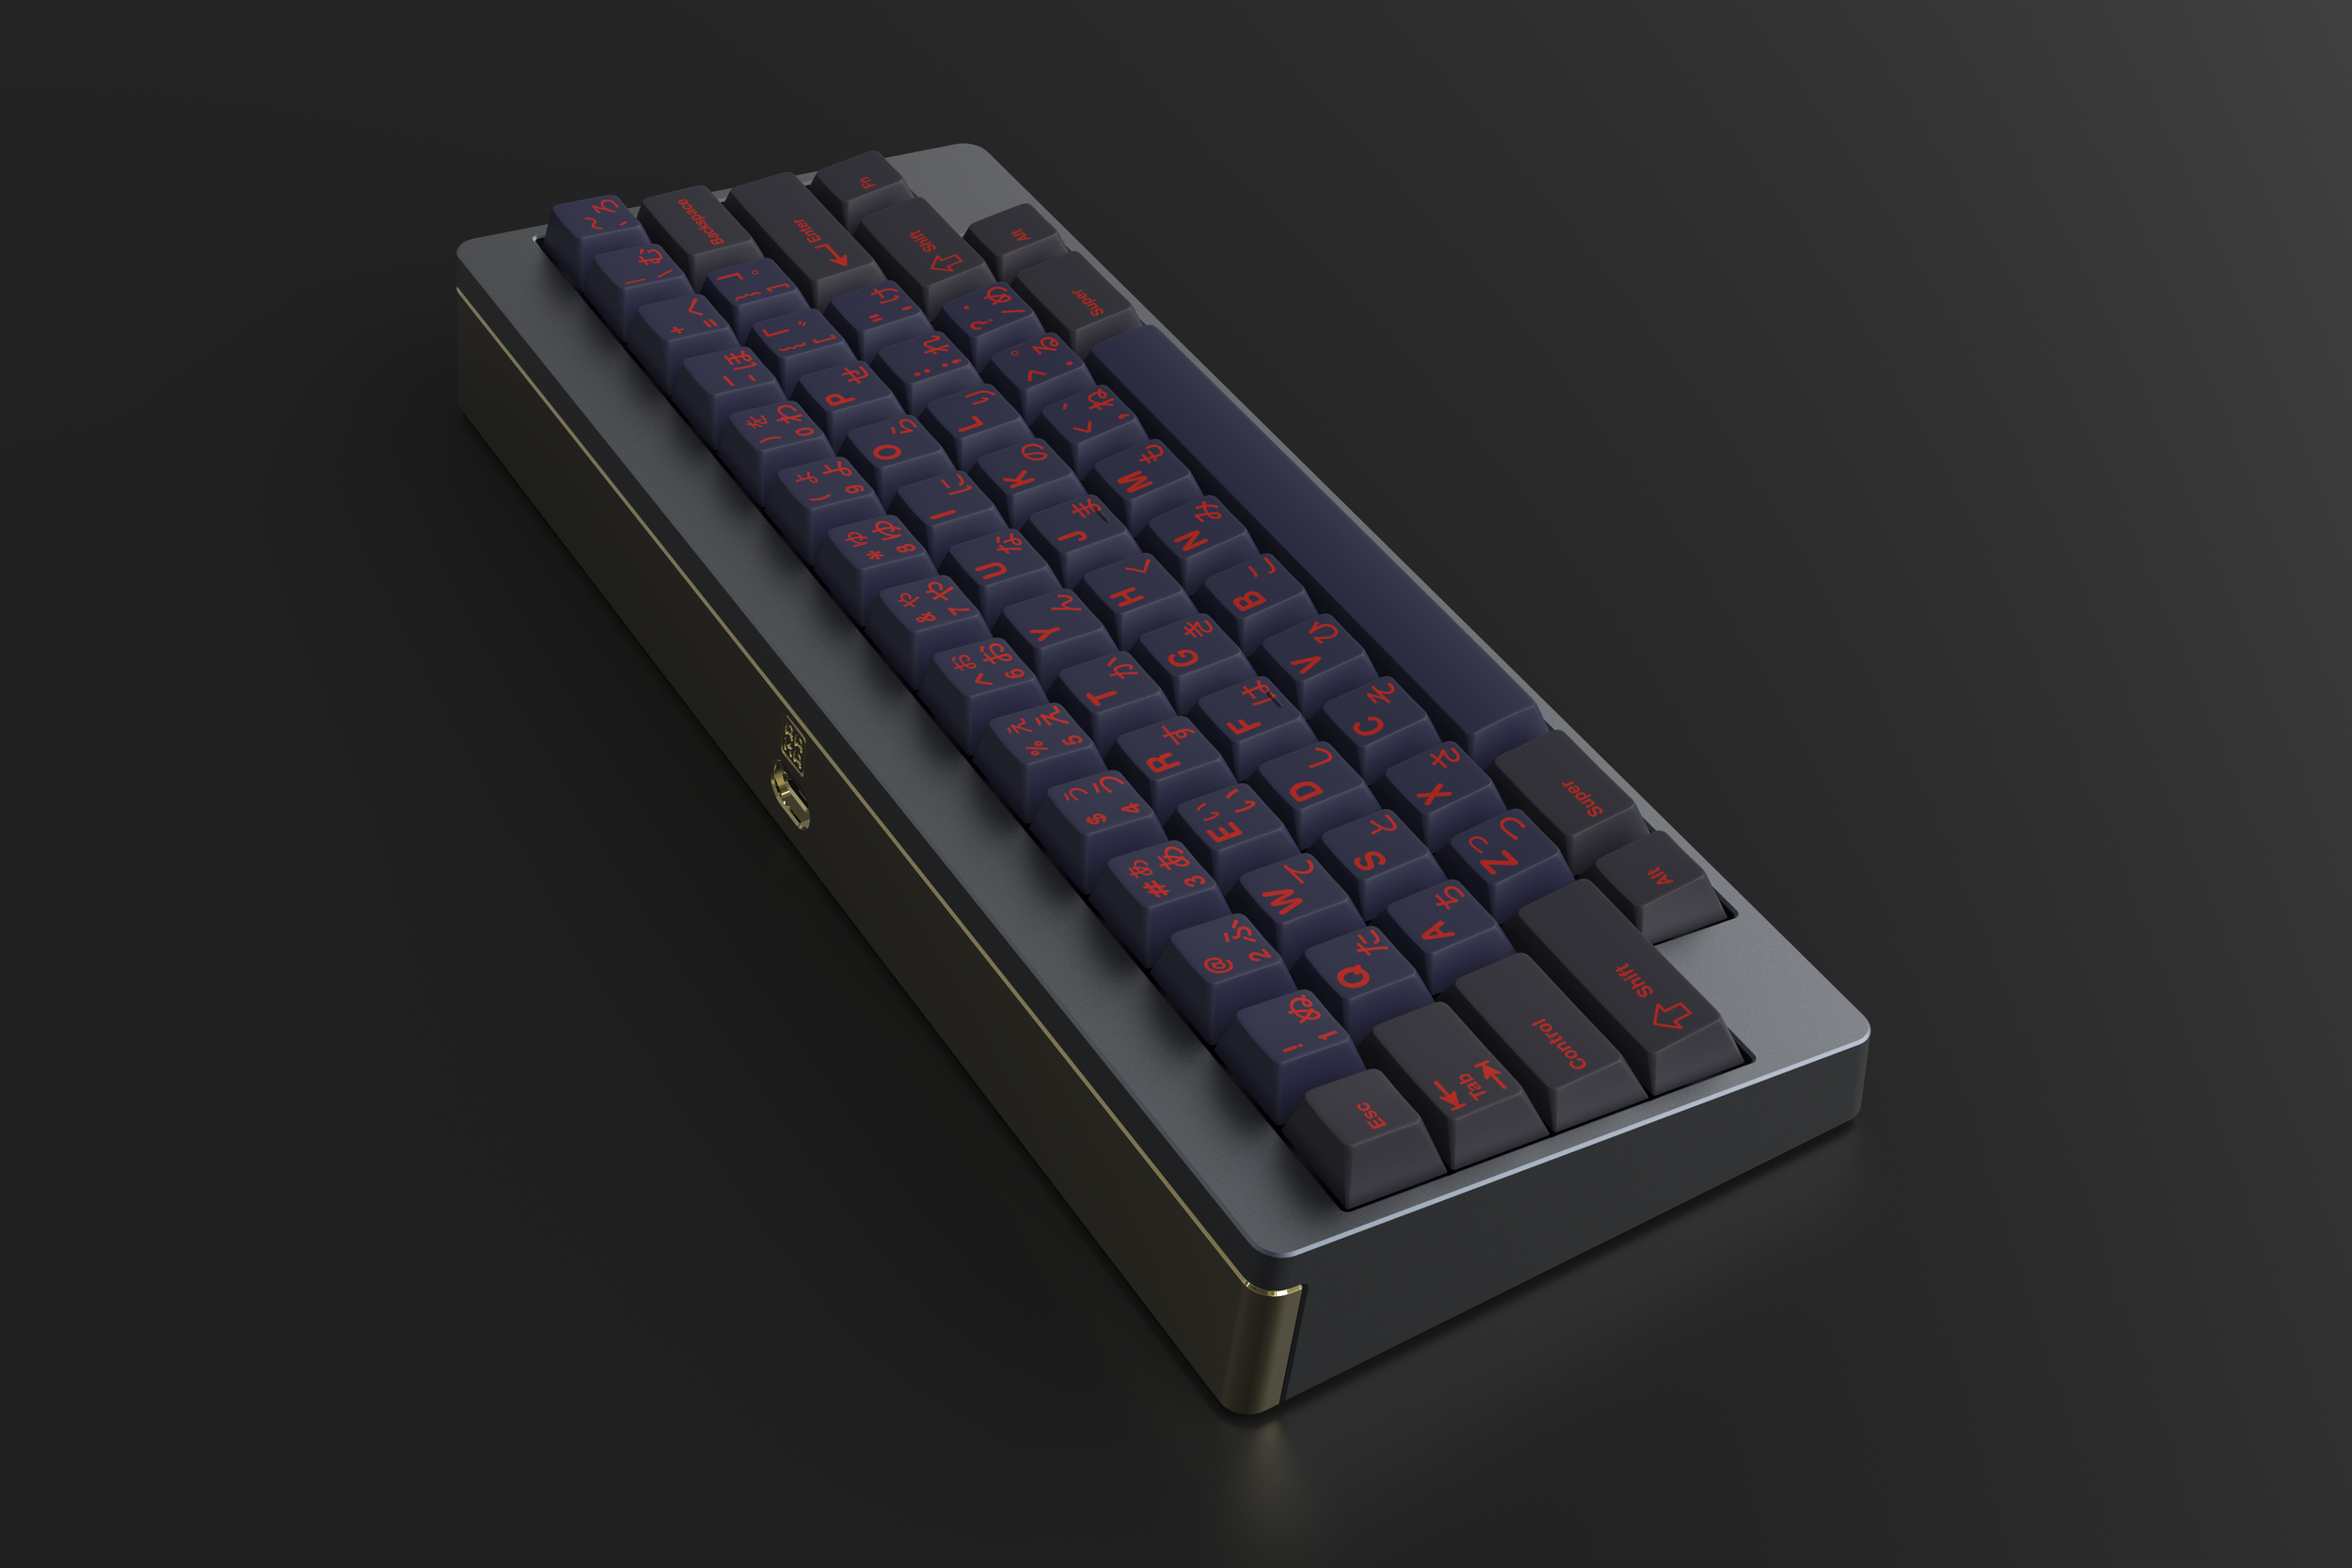 gmk_alter_keyboard_m60a_persp_back.png